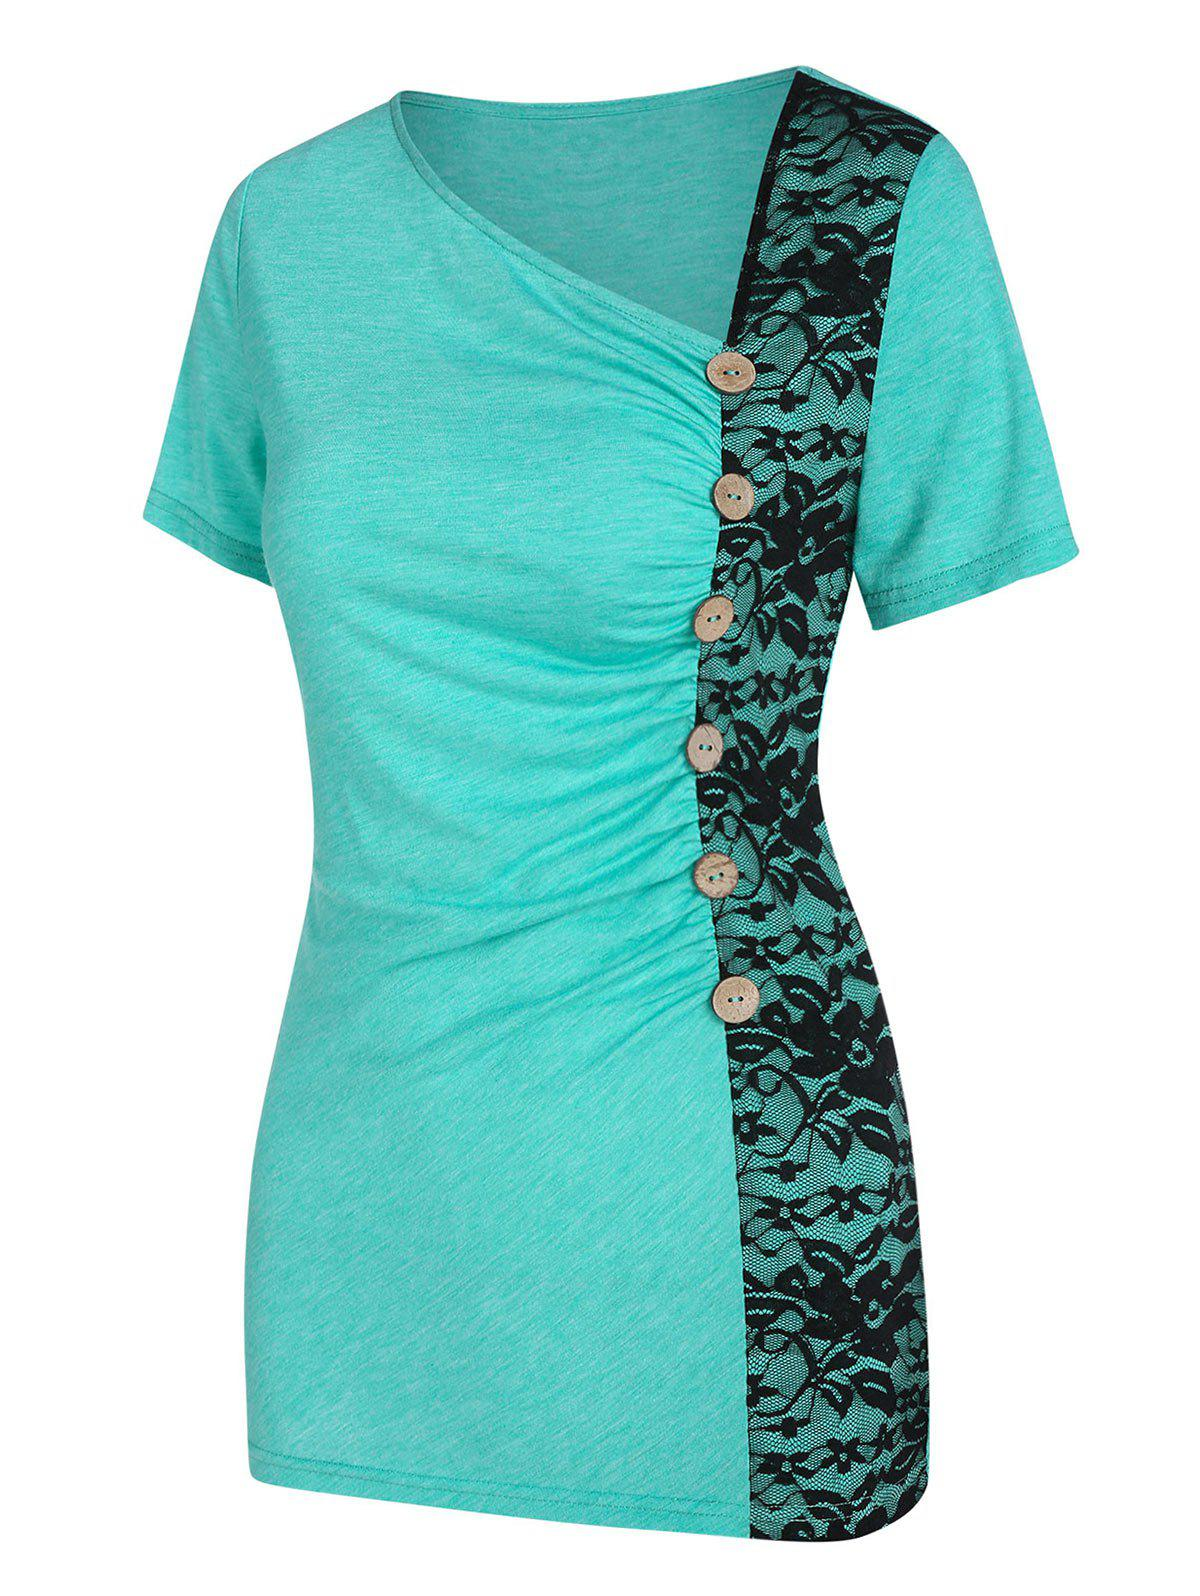 Skew Neck Lace Panel Ruched T Shirt - MEDIUM TURQUOISE M